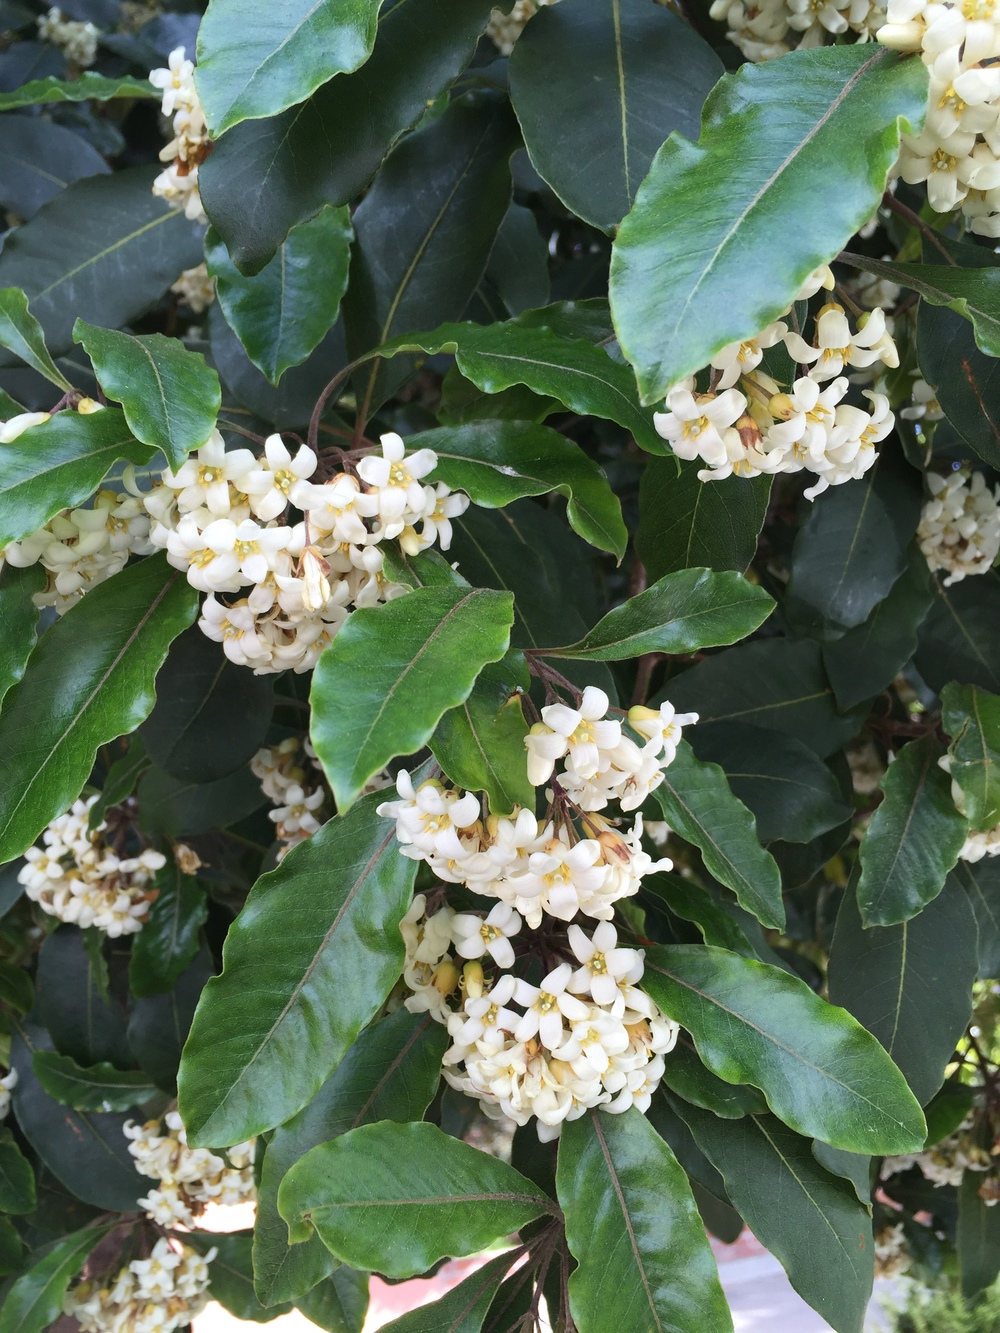 Victorian box blooms out en masse san francisco trees the victorian box pittosporum undulatum is one of san franciscos most common trees and small white flowers of the tree are out all over the city as mightylinksfo